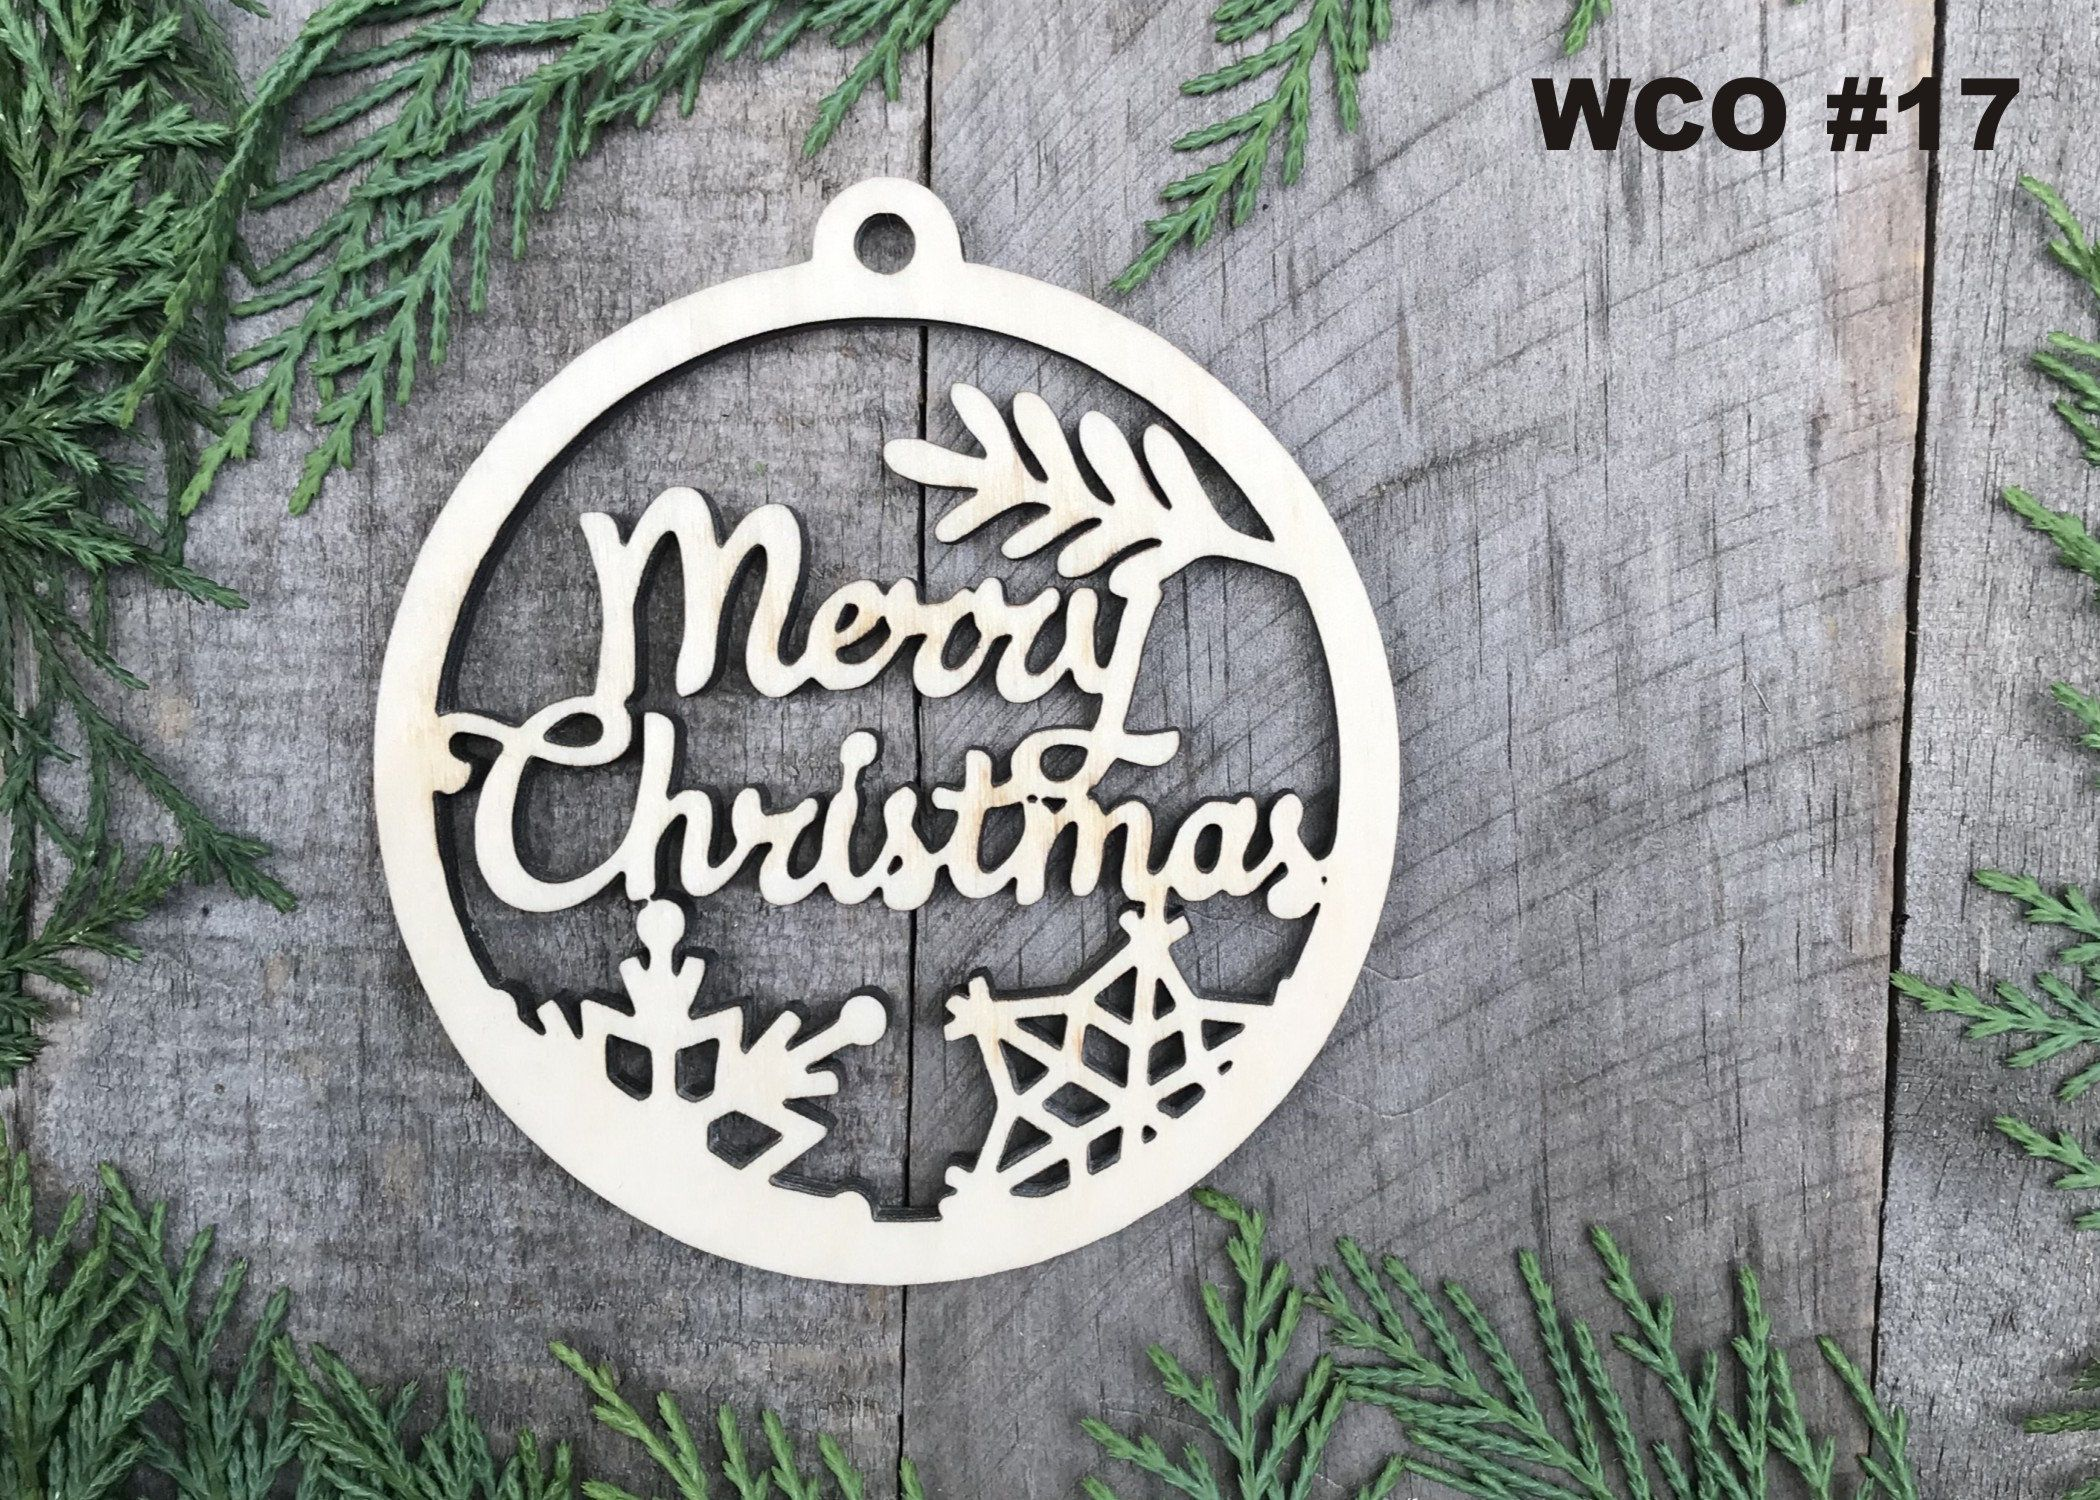 Believe In Christmas Ornament Wood Christmas Ornament Birch Christmas Ornament Christmas Ornaments laser cut ornament baltic birch